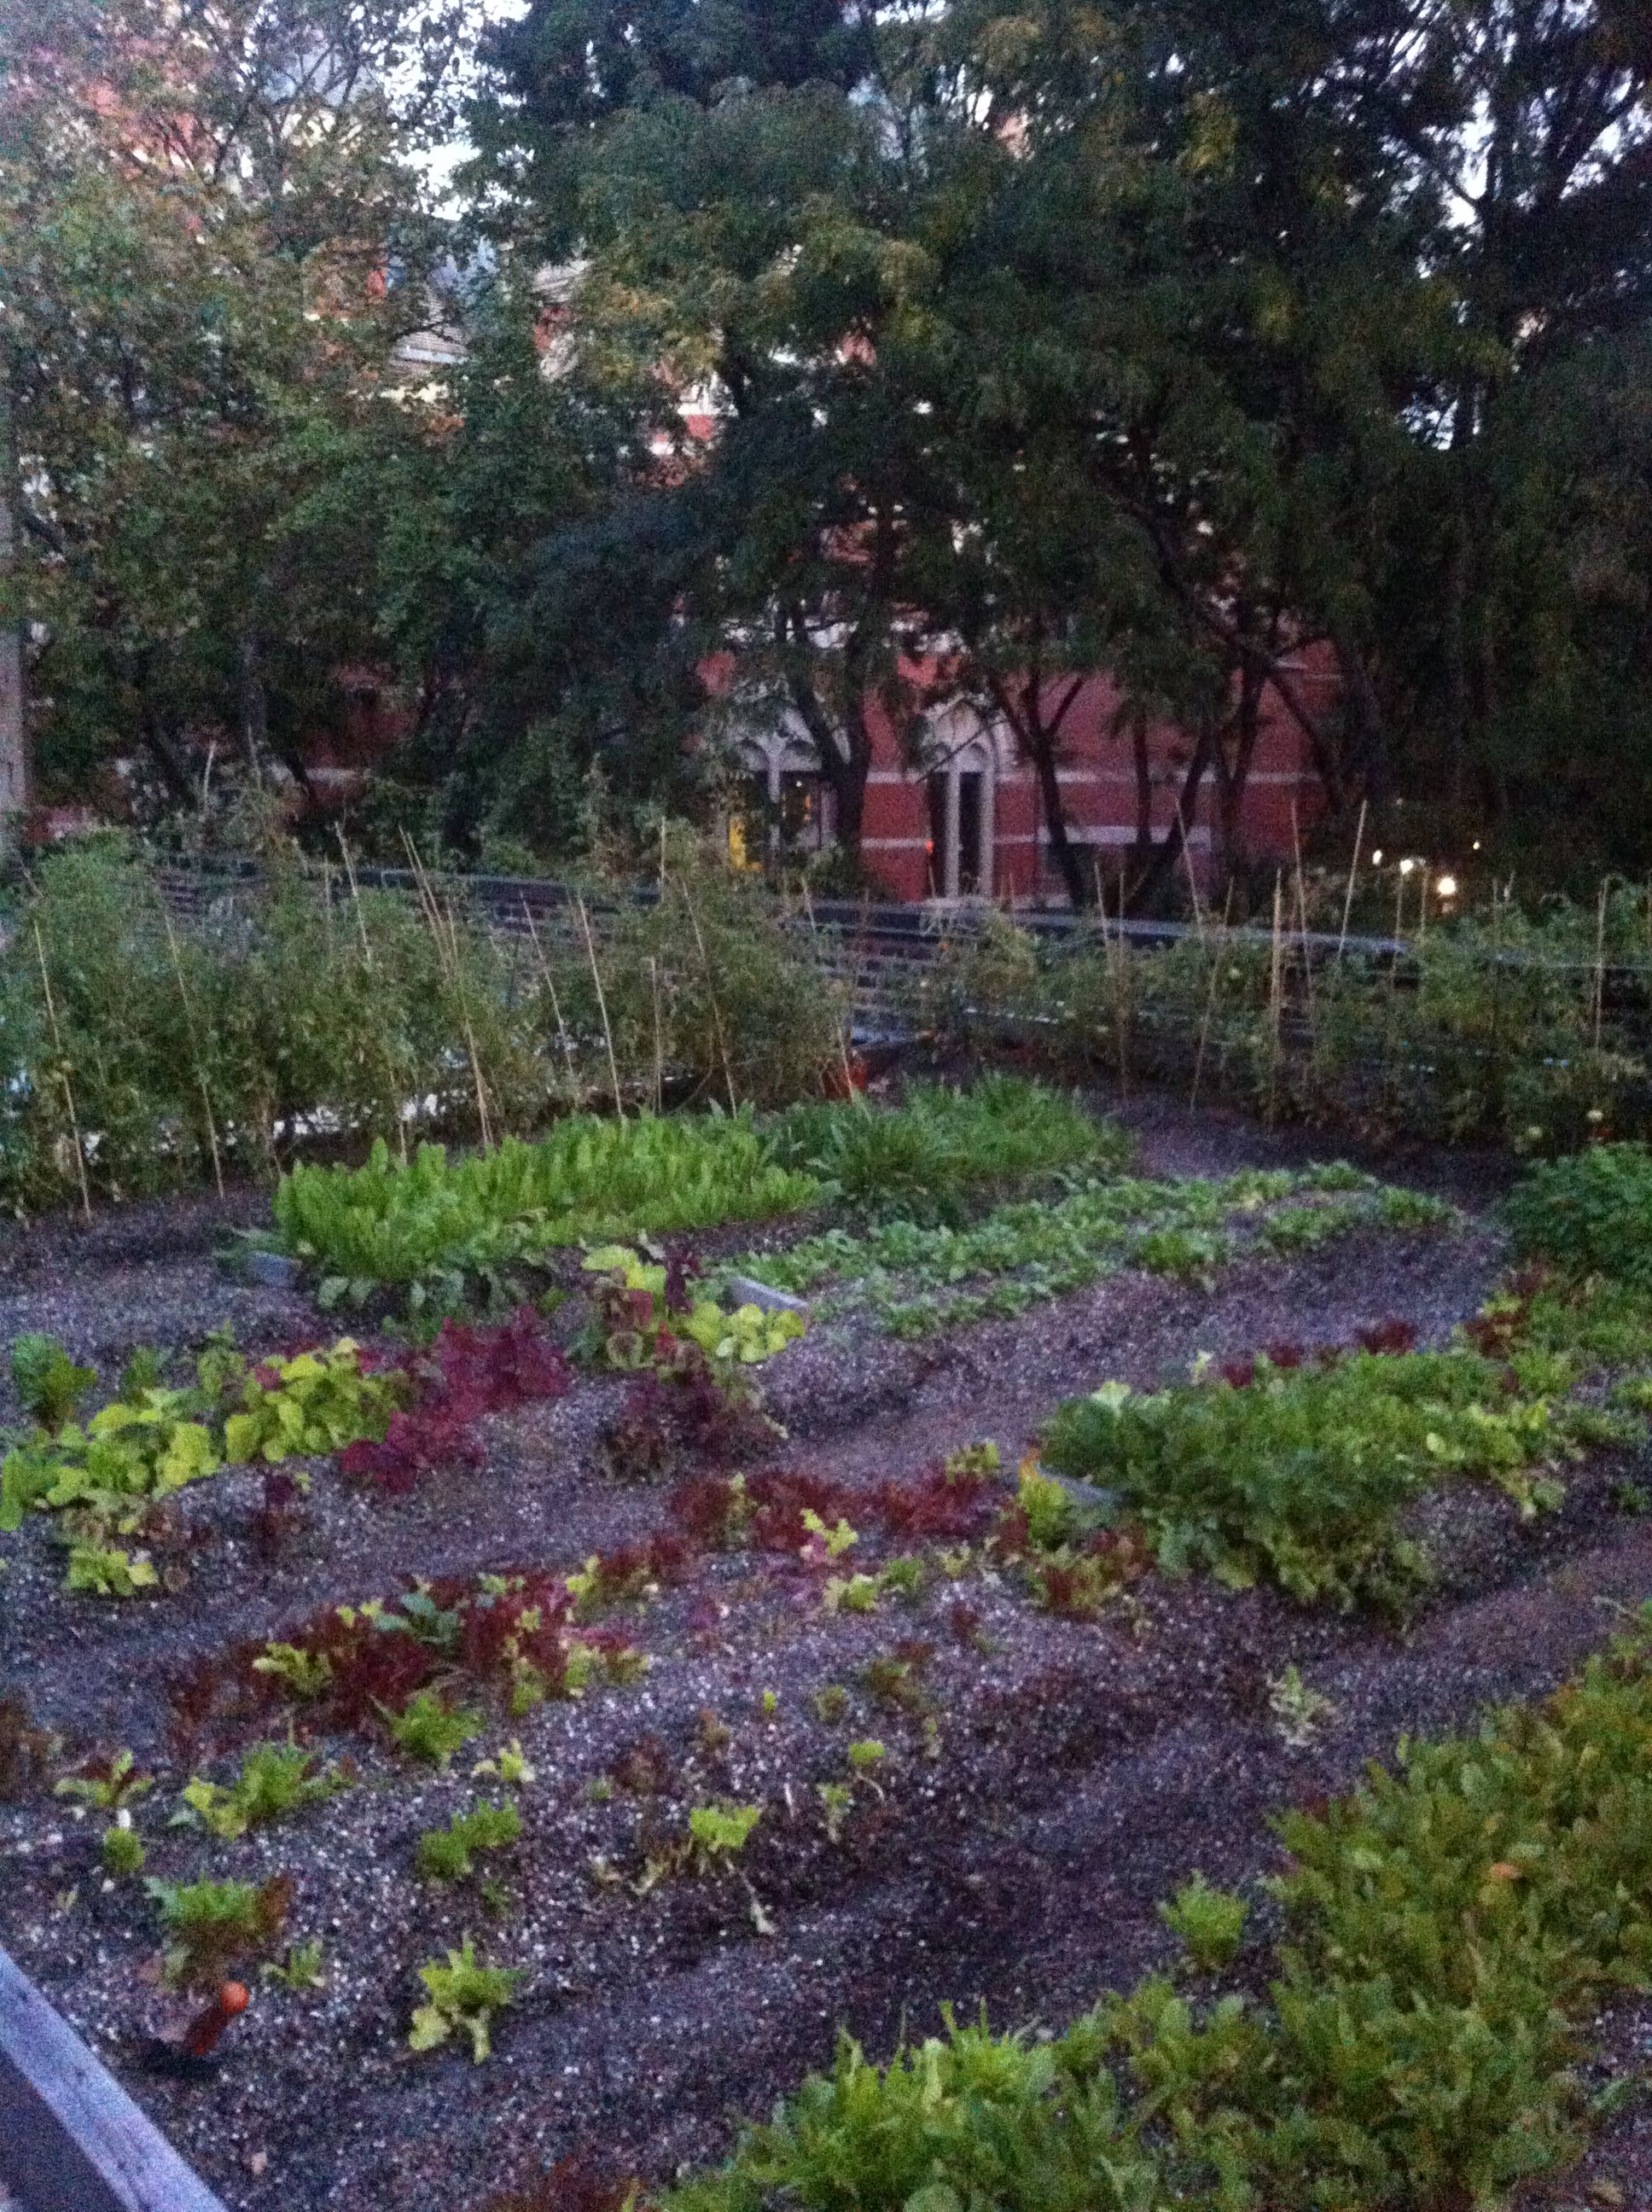 New favorite NYC restaurant, Rosemary's rooftop herb